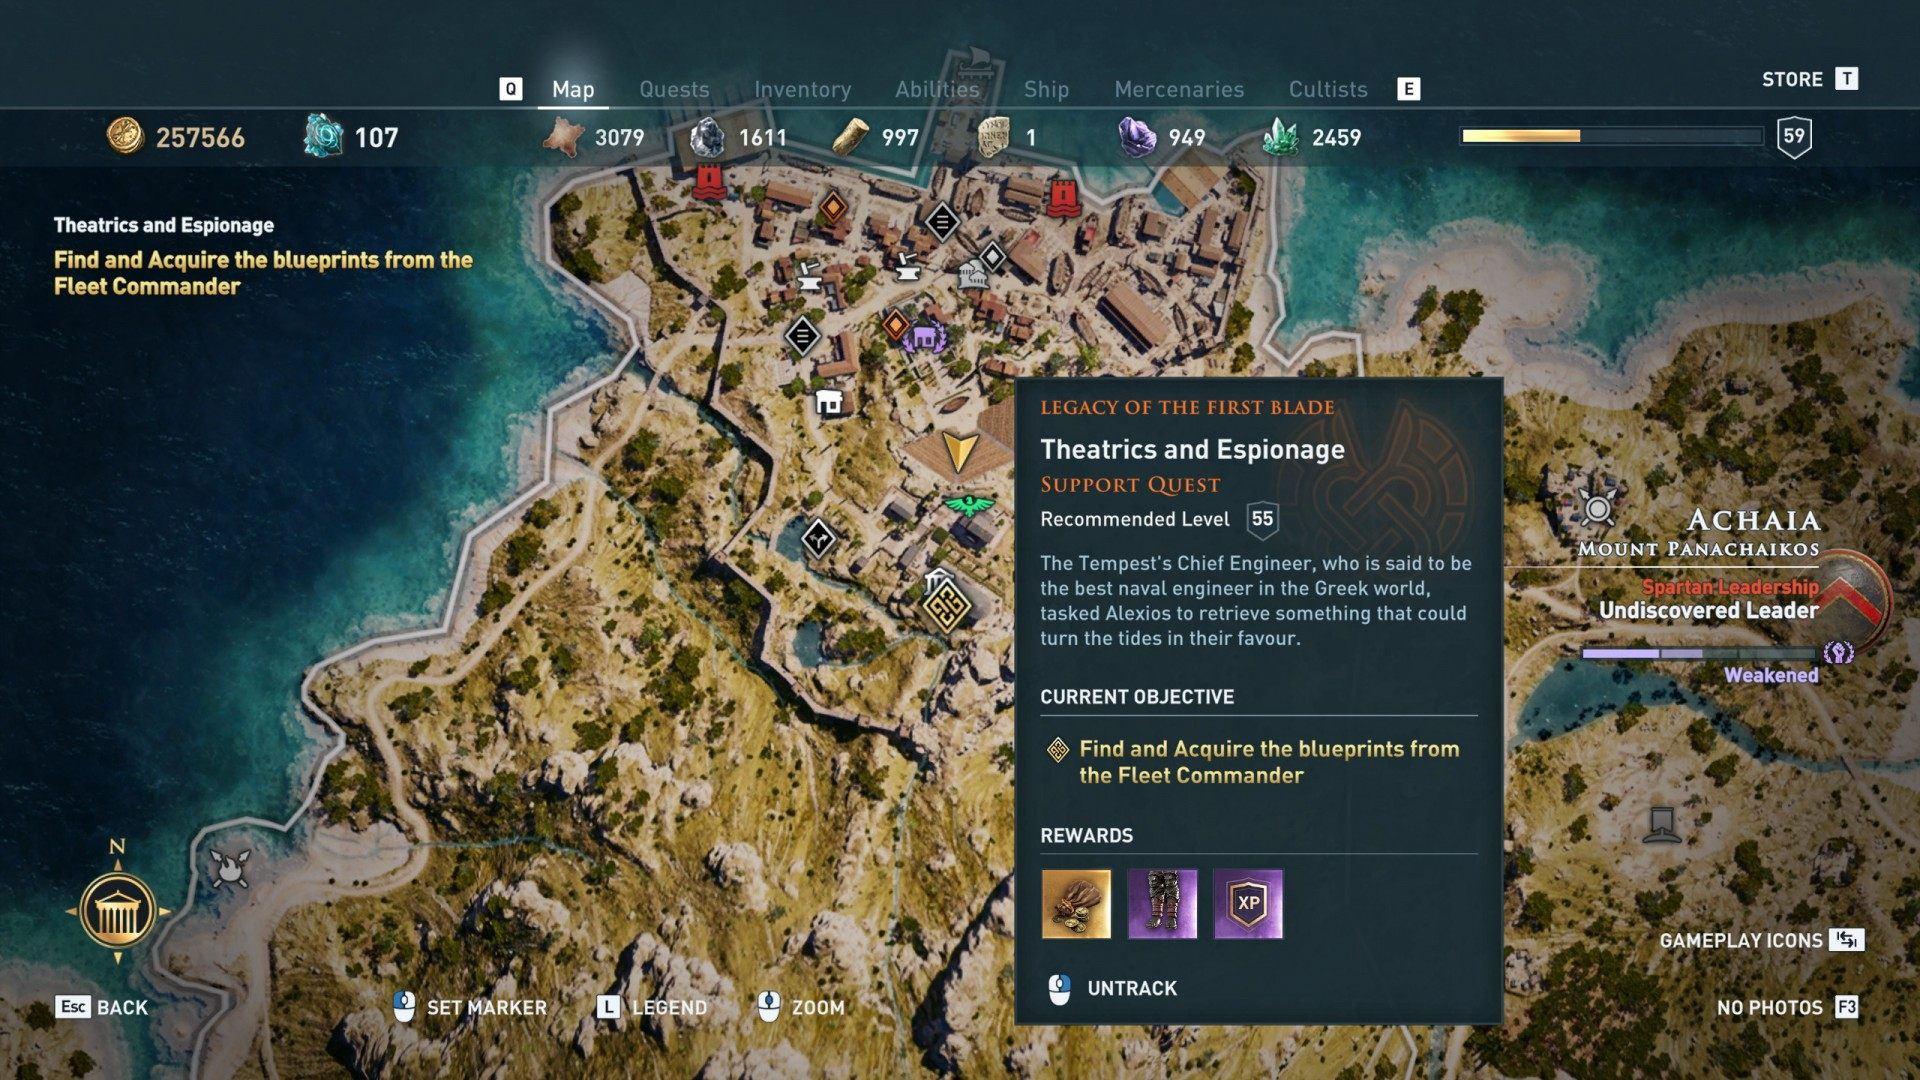 Theatrics and Espionage, Assassin's Creed Odyssey Quest